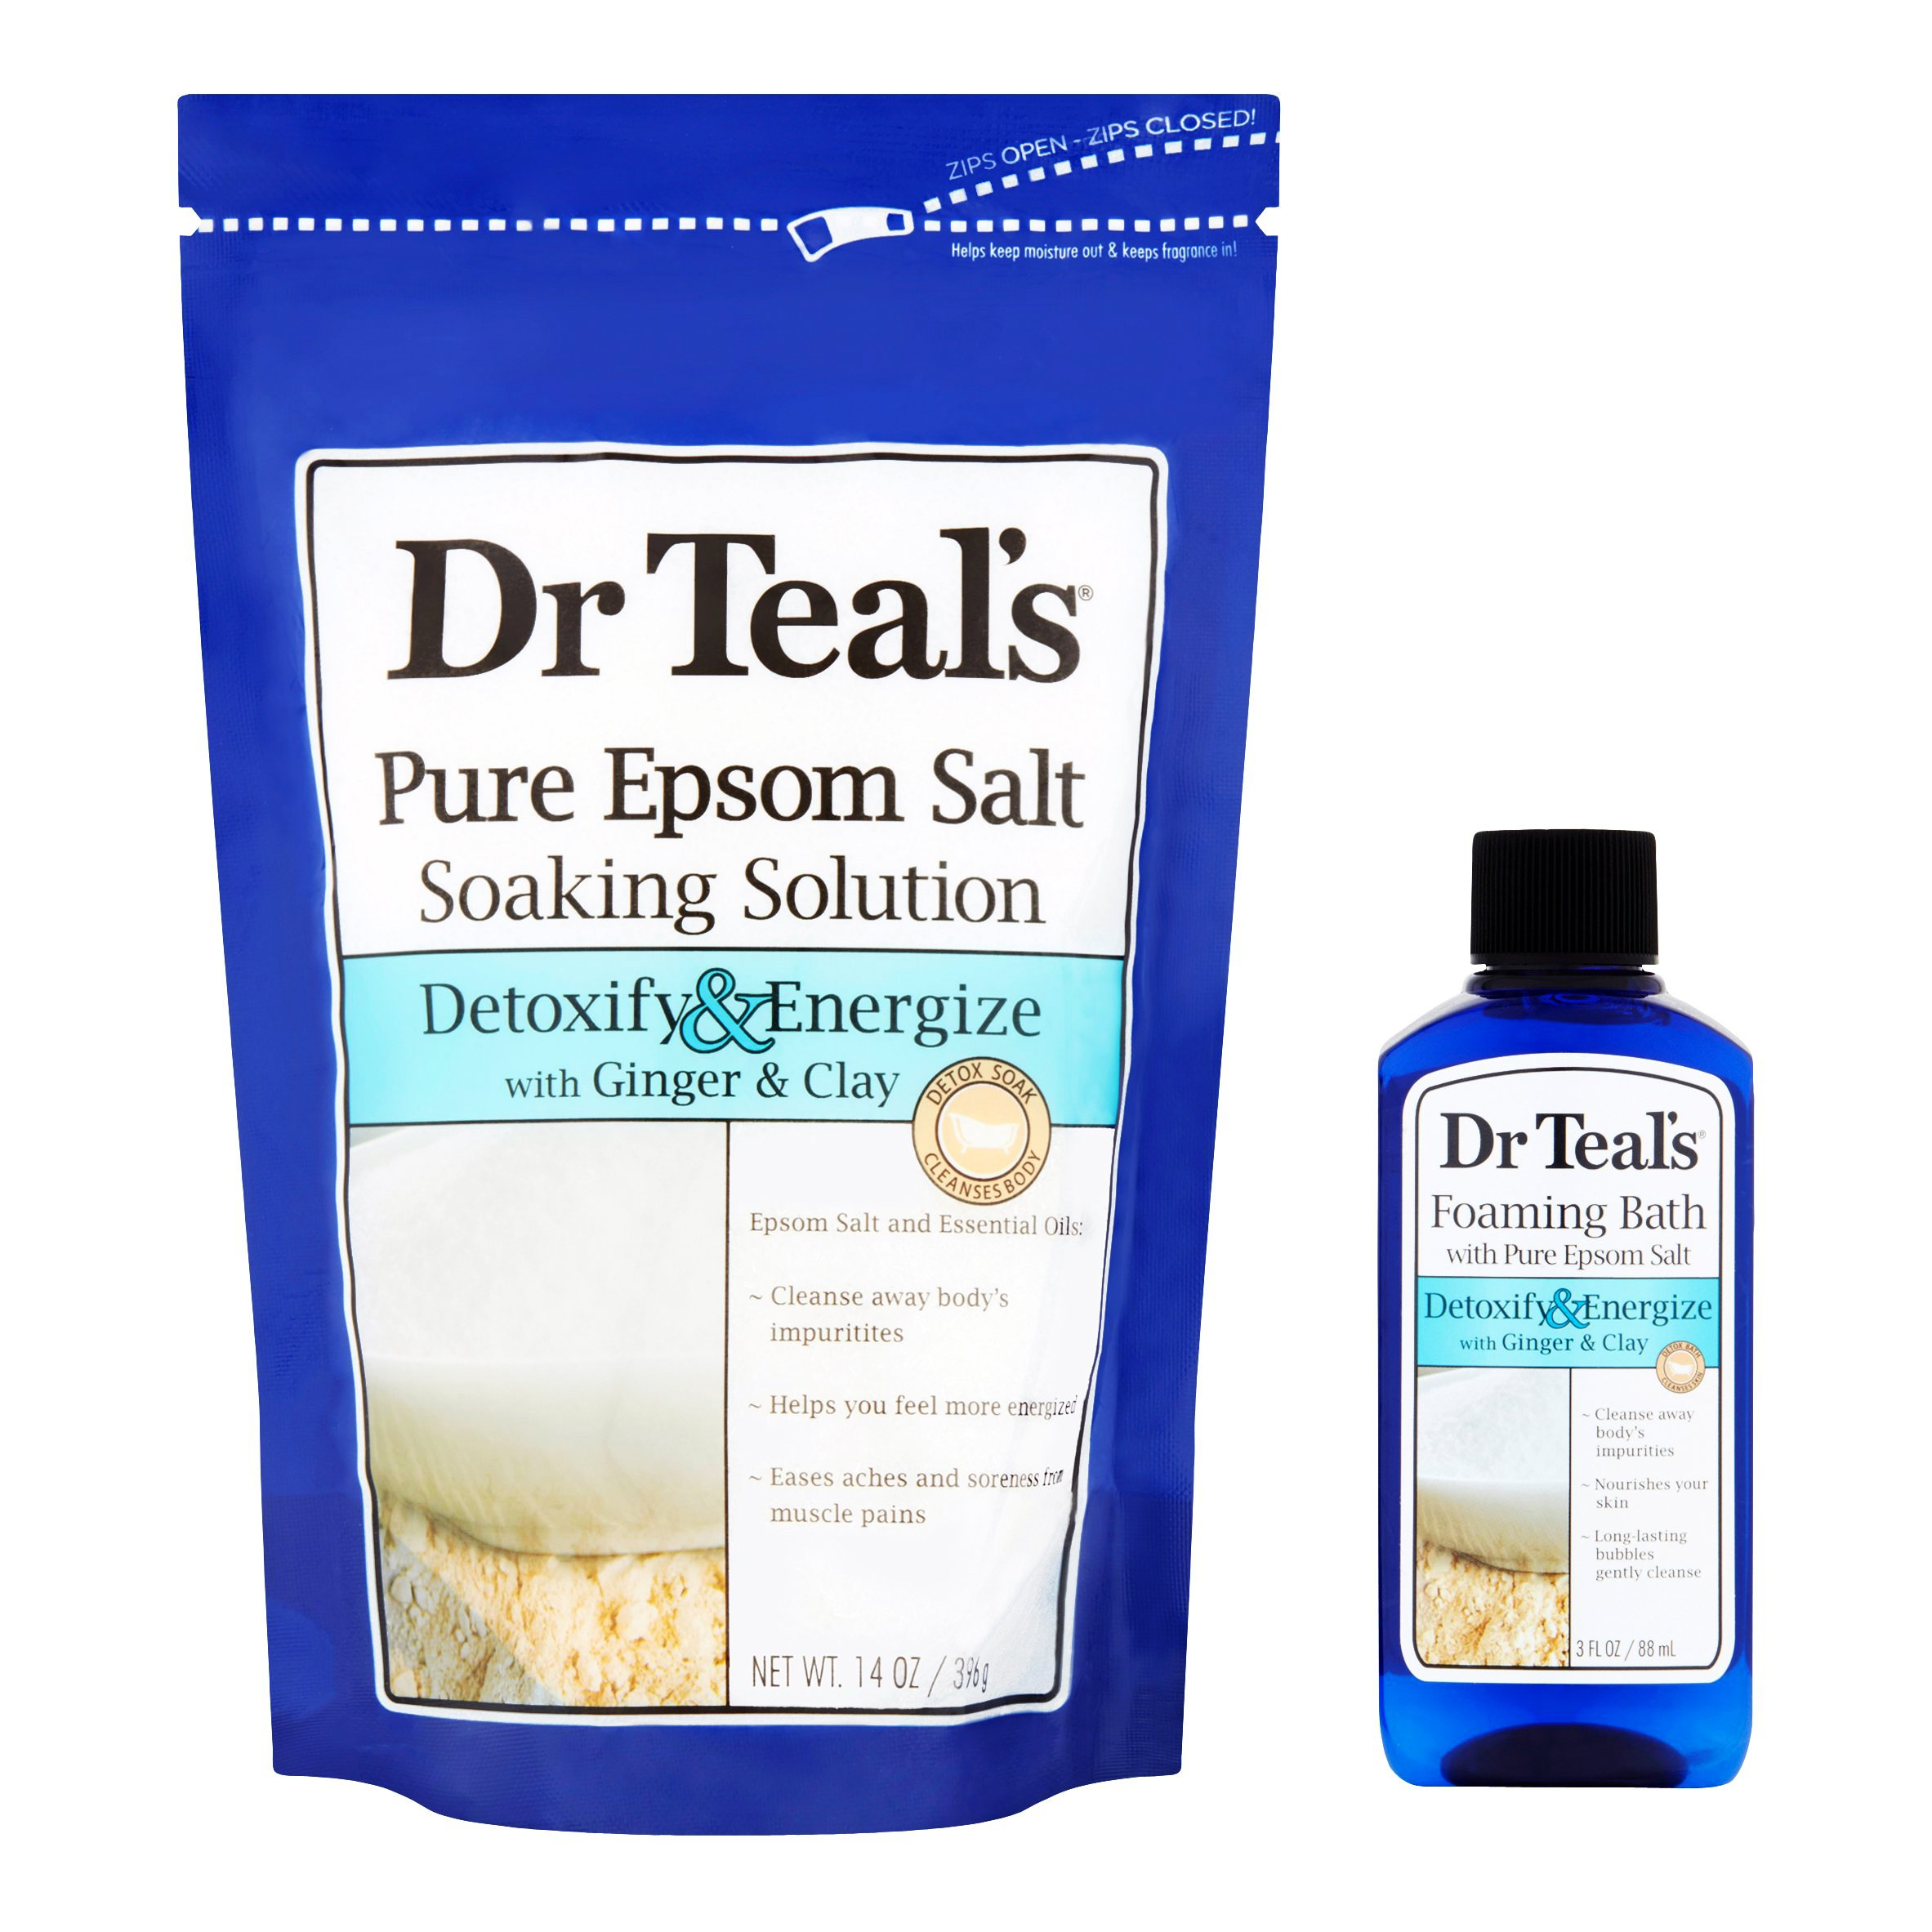 Dr Teal's Detox with Ginger & Clay 2-Piece Bath Travel Gift Set